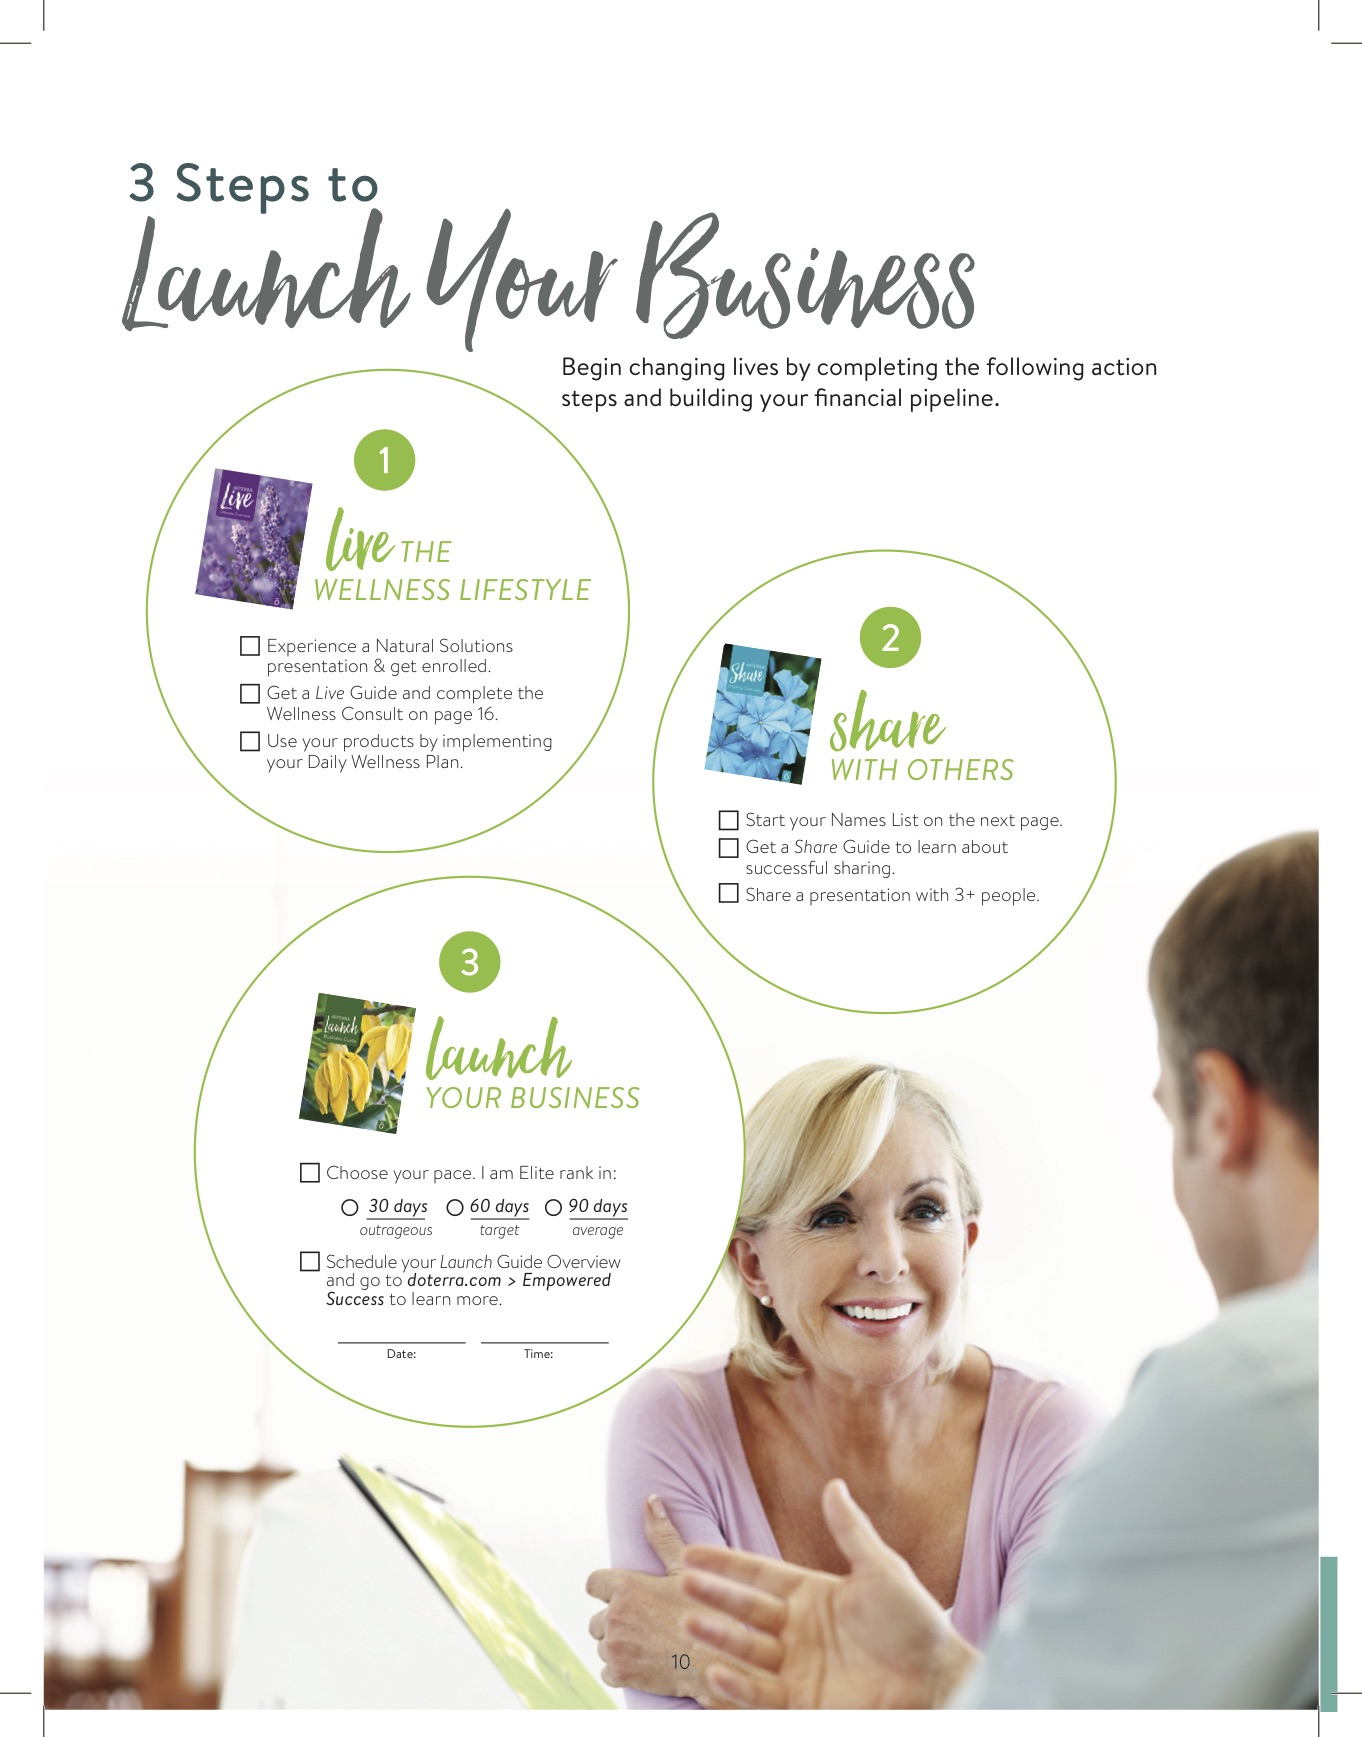 doTerra build your business 10.jpg